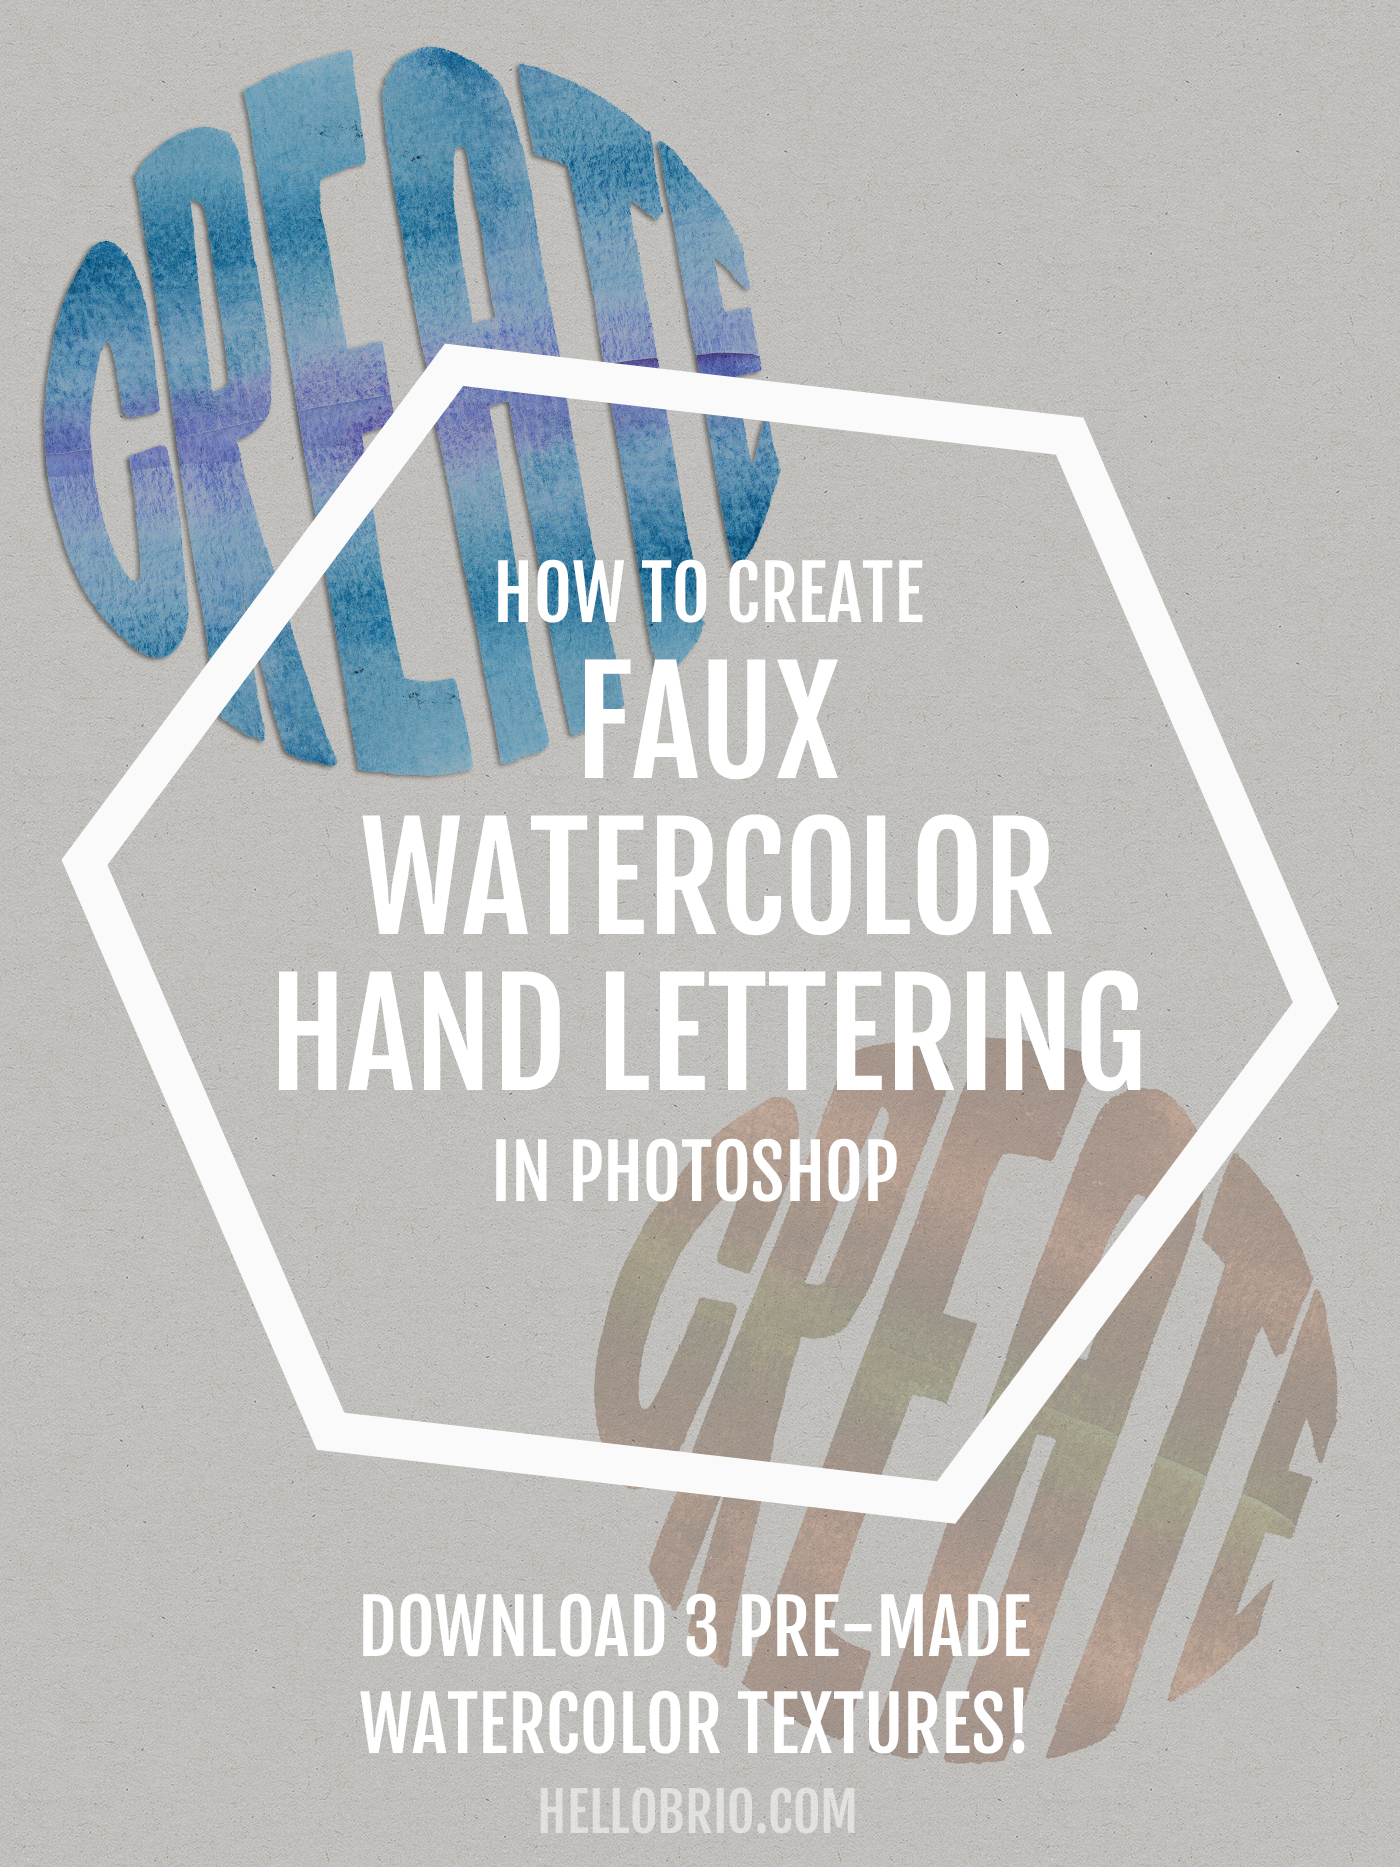 How to create faux watercolor hand lettering in Photoshop